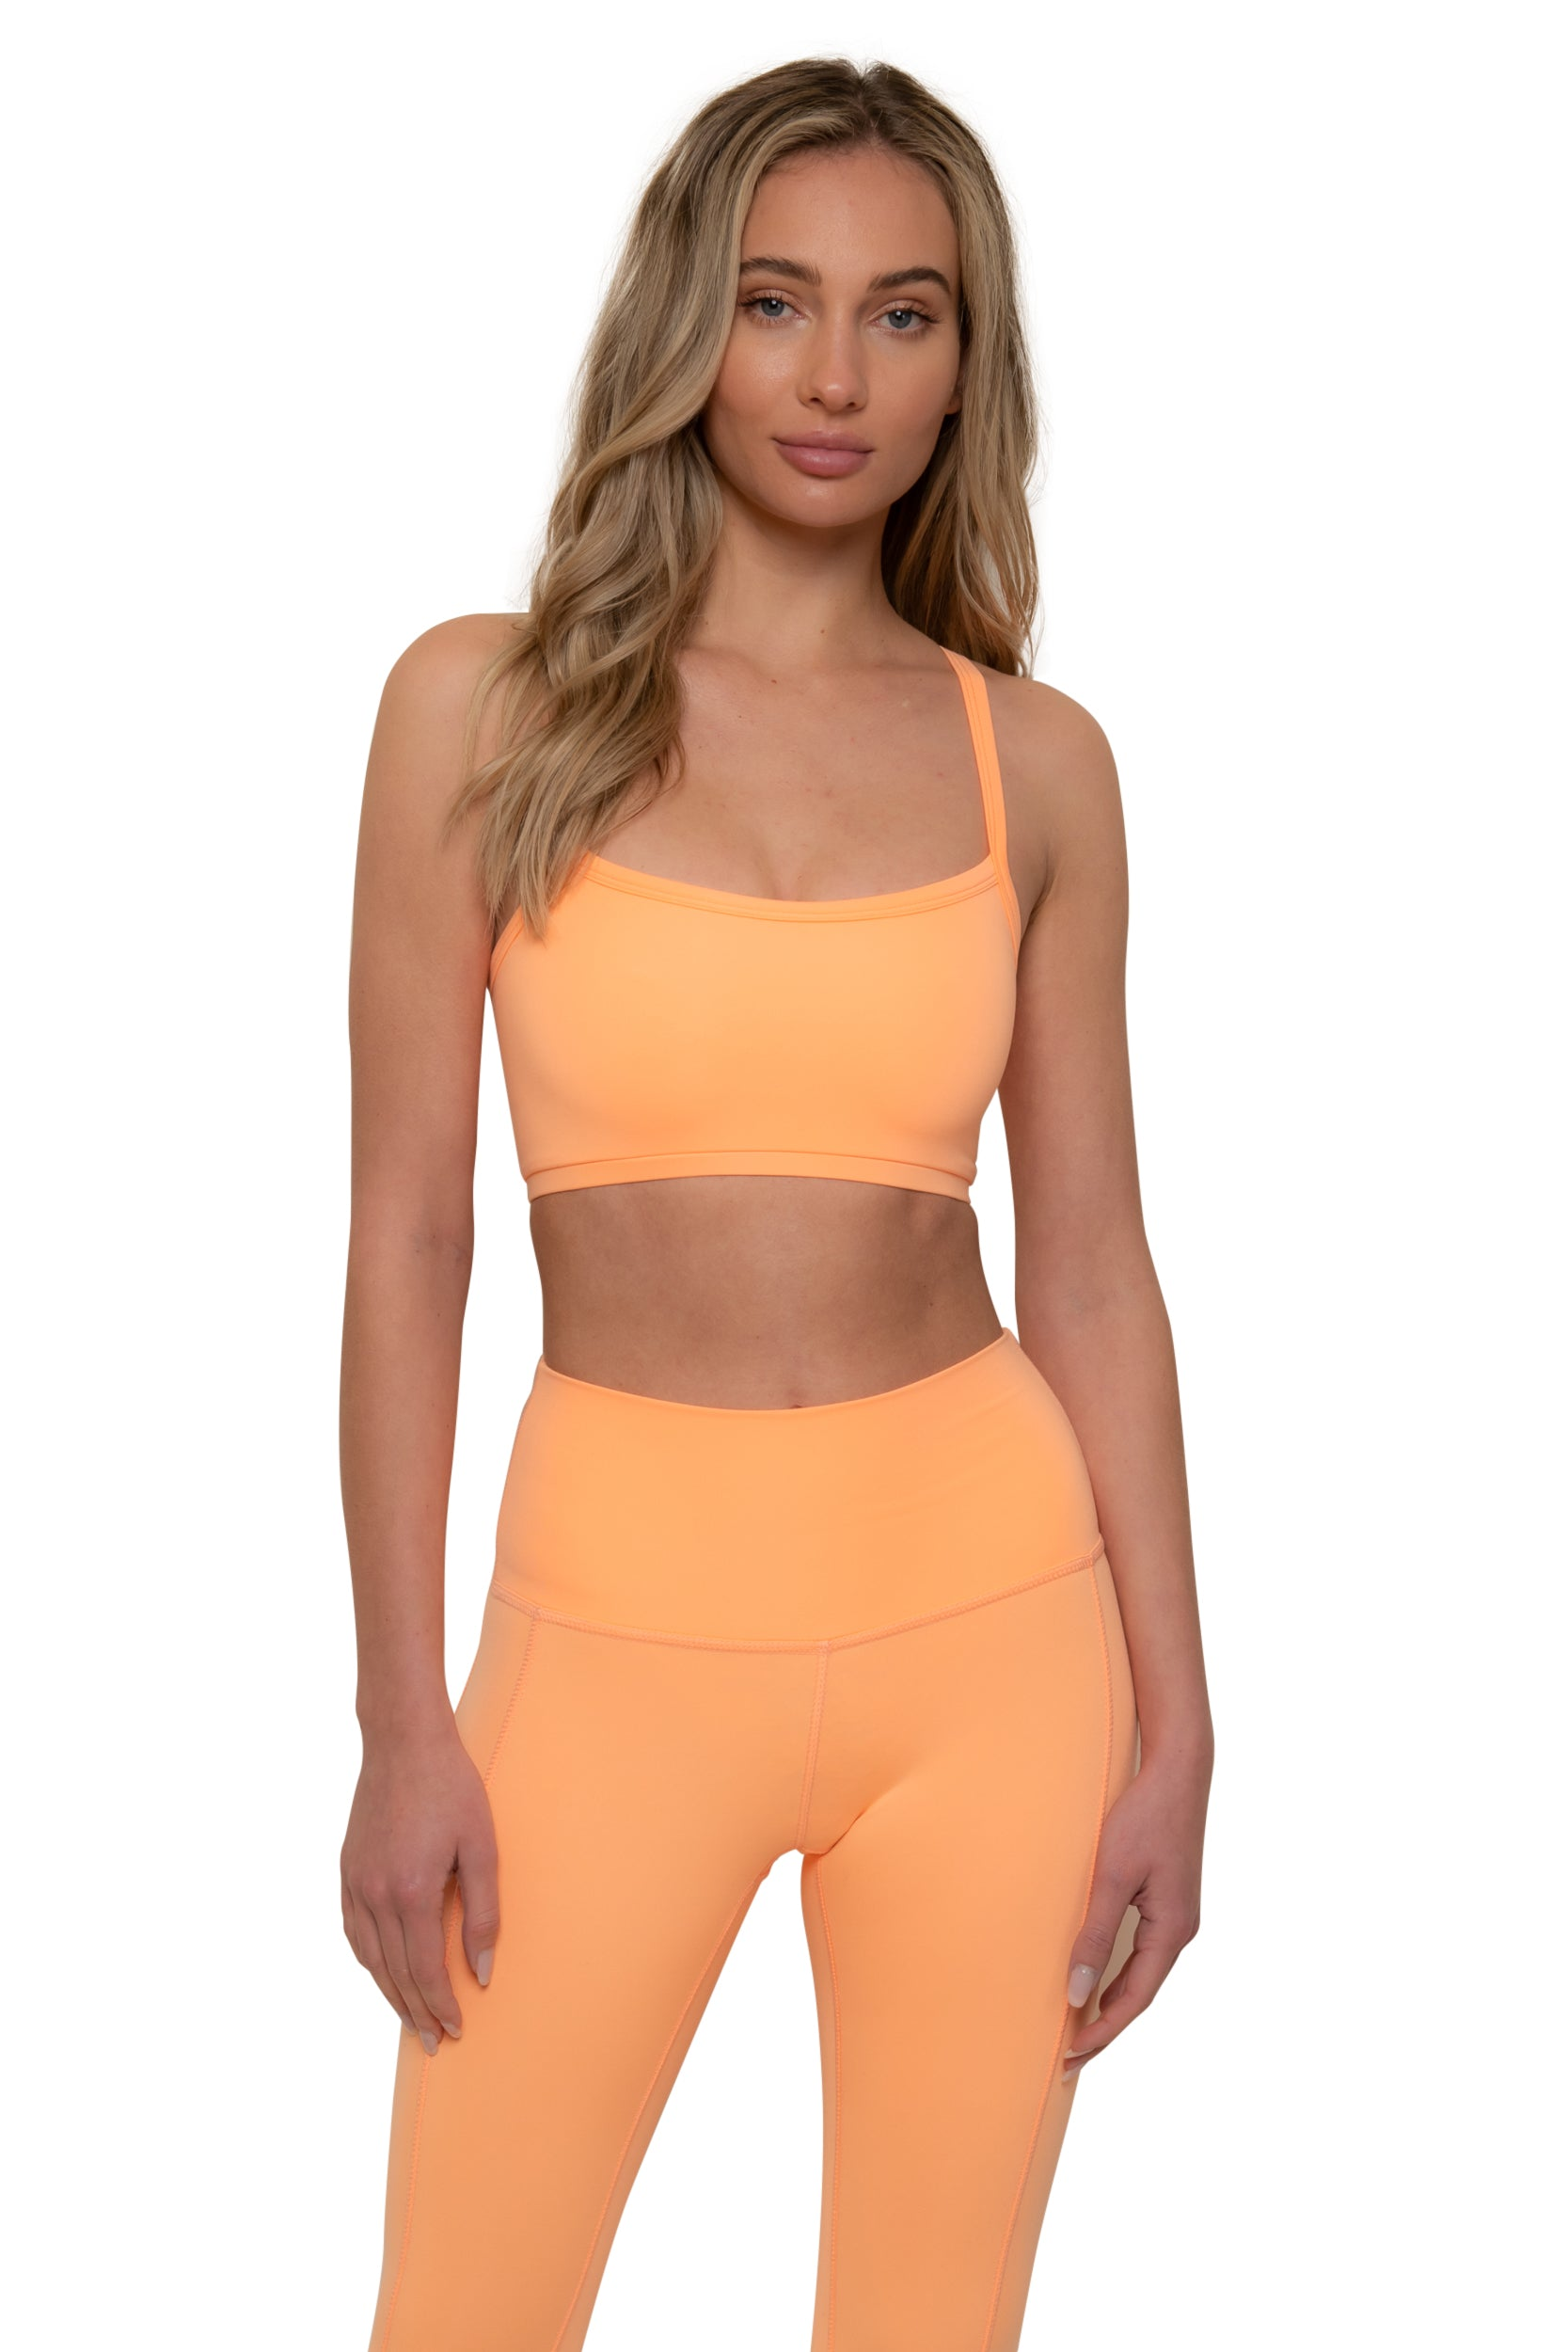 Cantaloupe Sports Bra